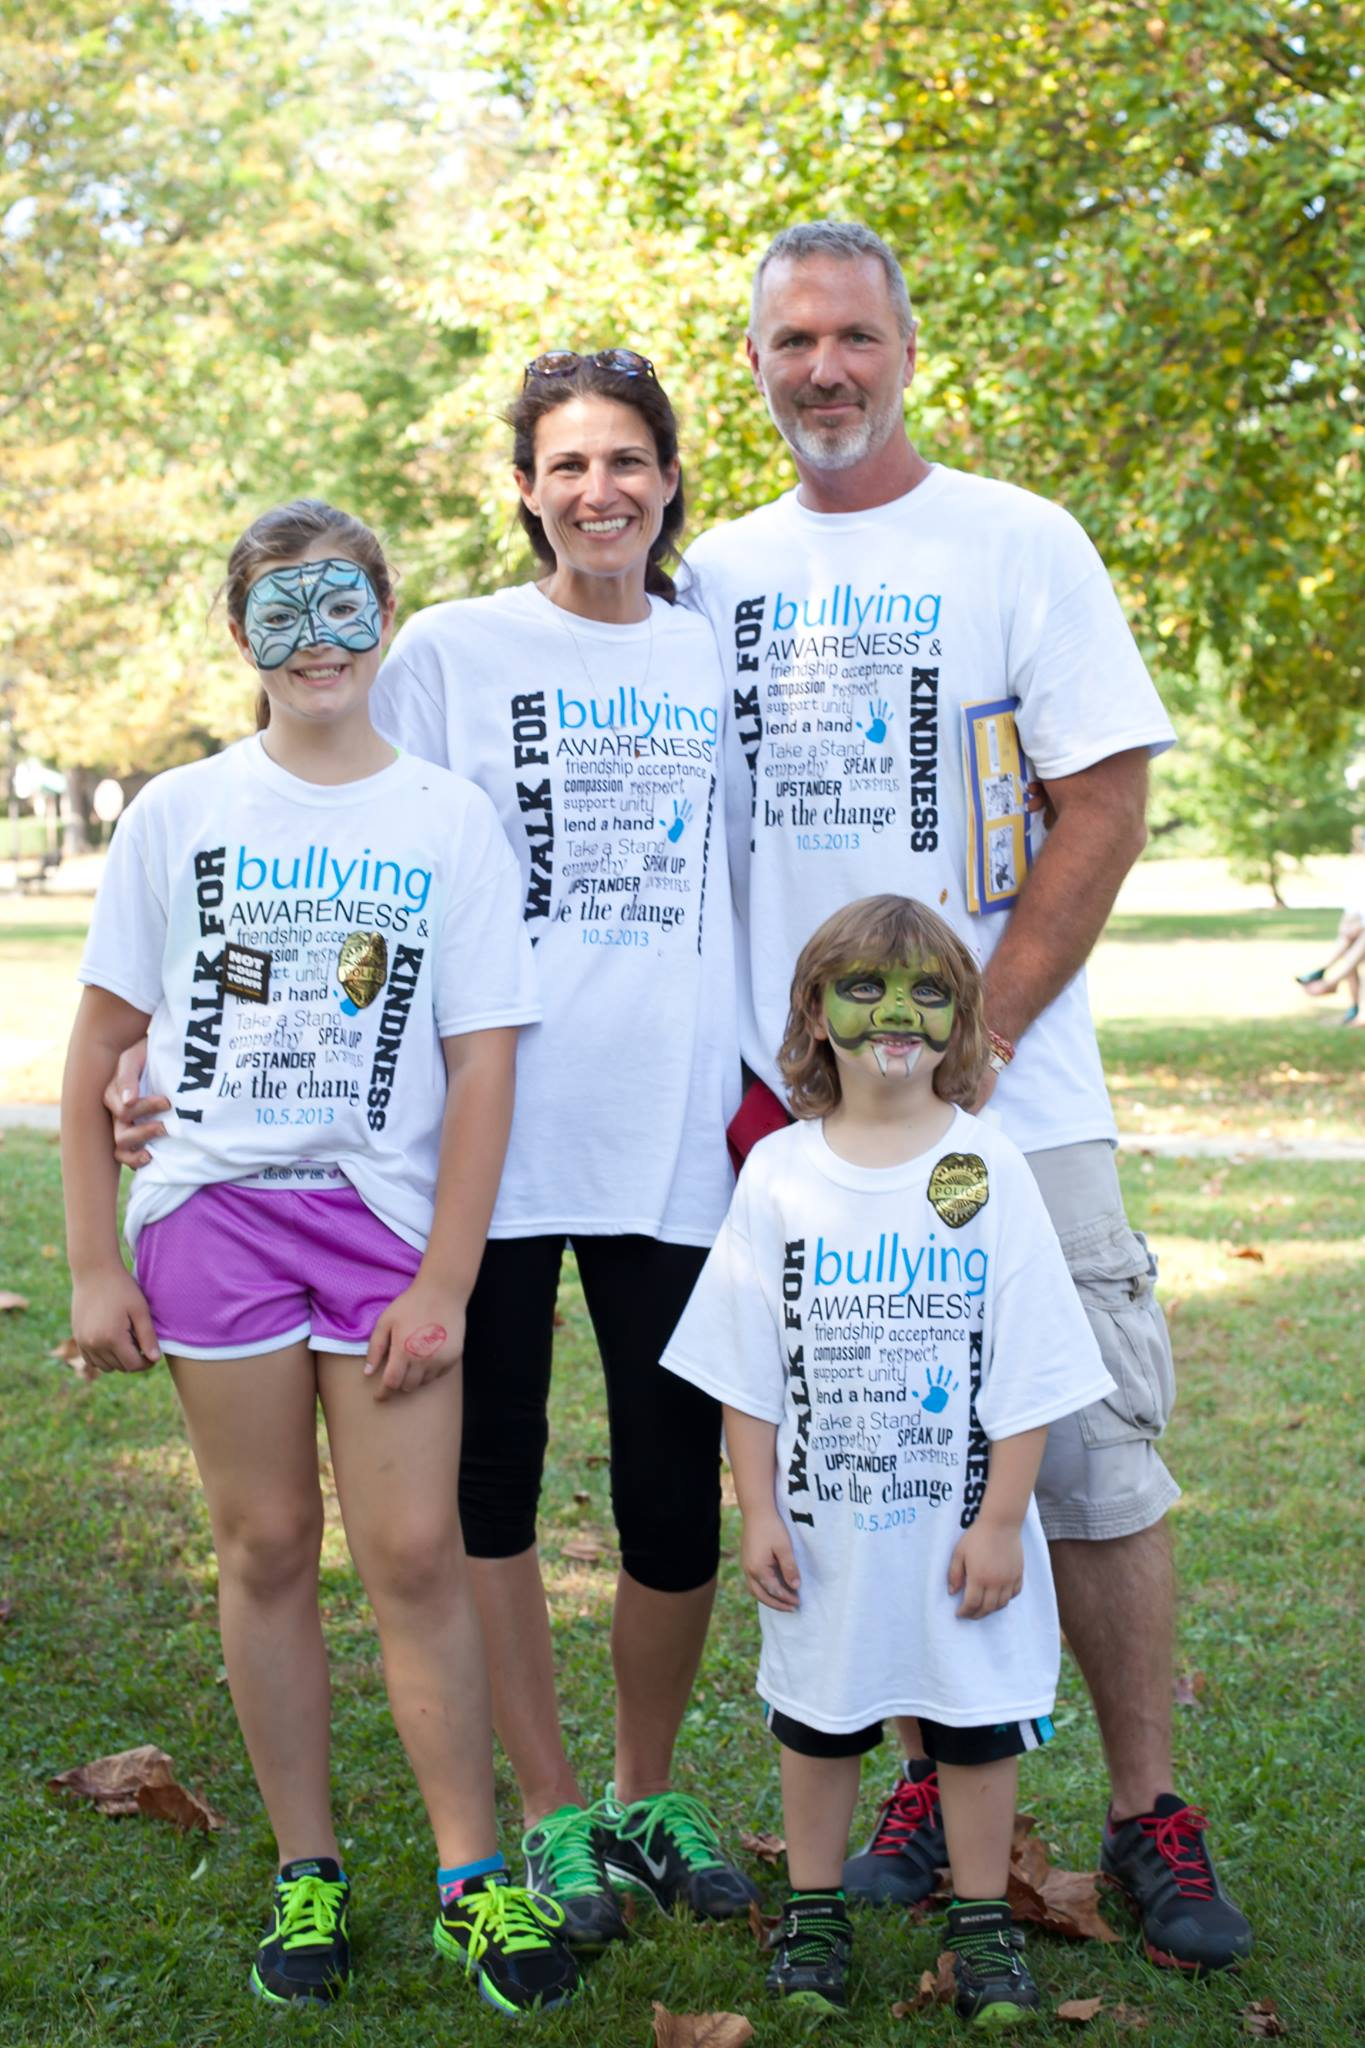 A Walk for Bullying Awareness